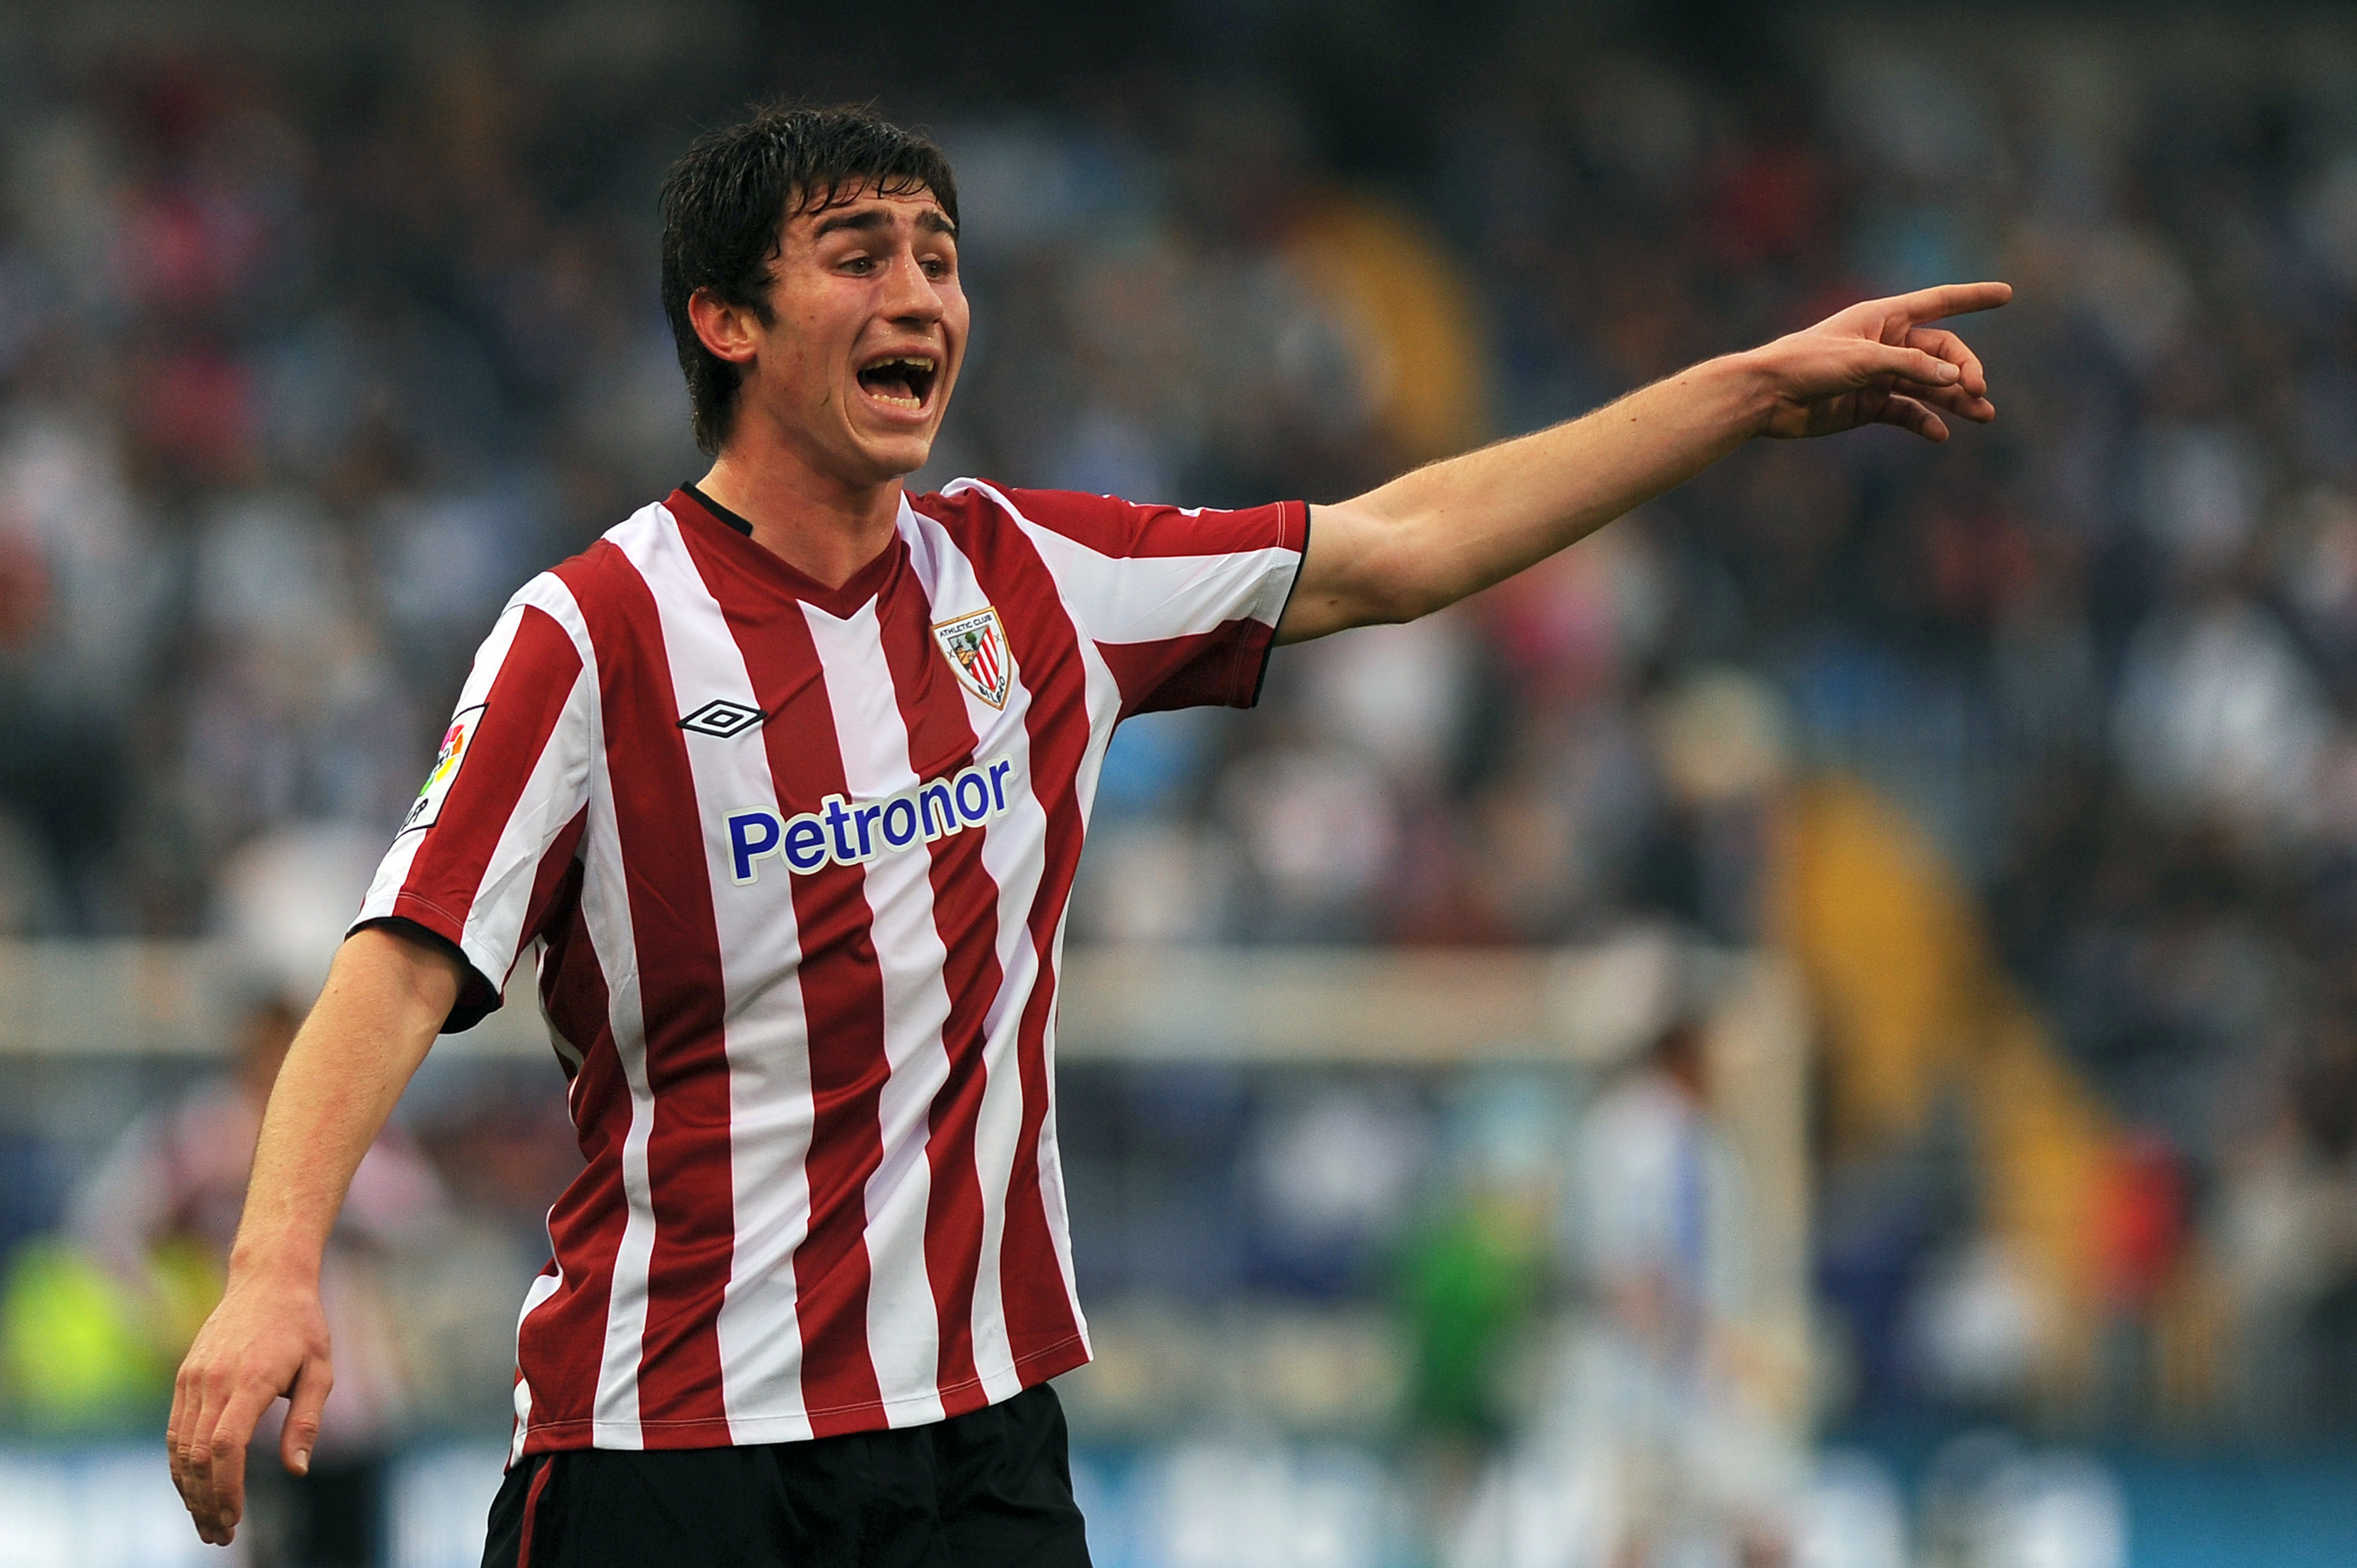 Aymeric Laporte set to disappoint Manchester United and sign on at Barcelona in the summer transfer window